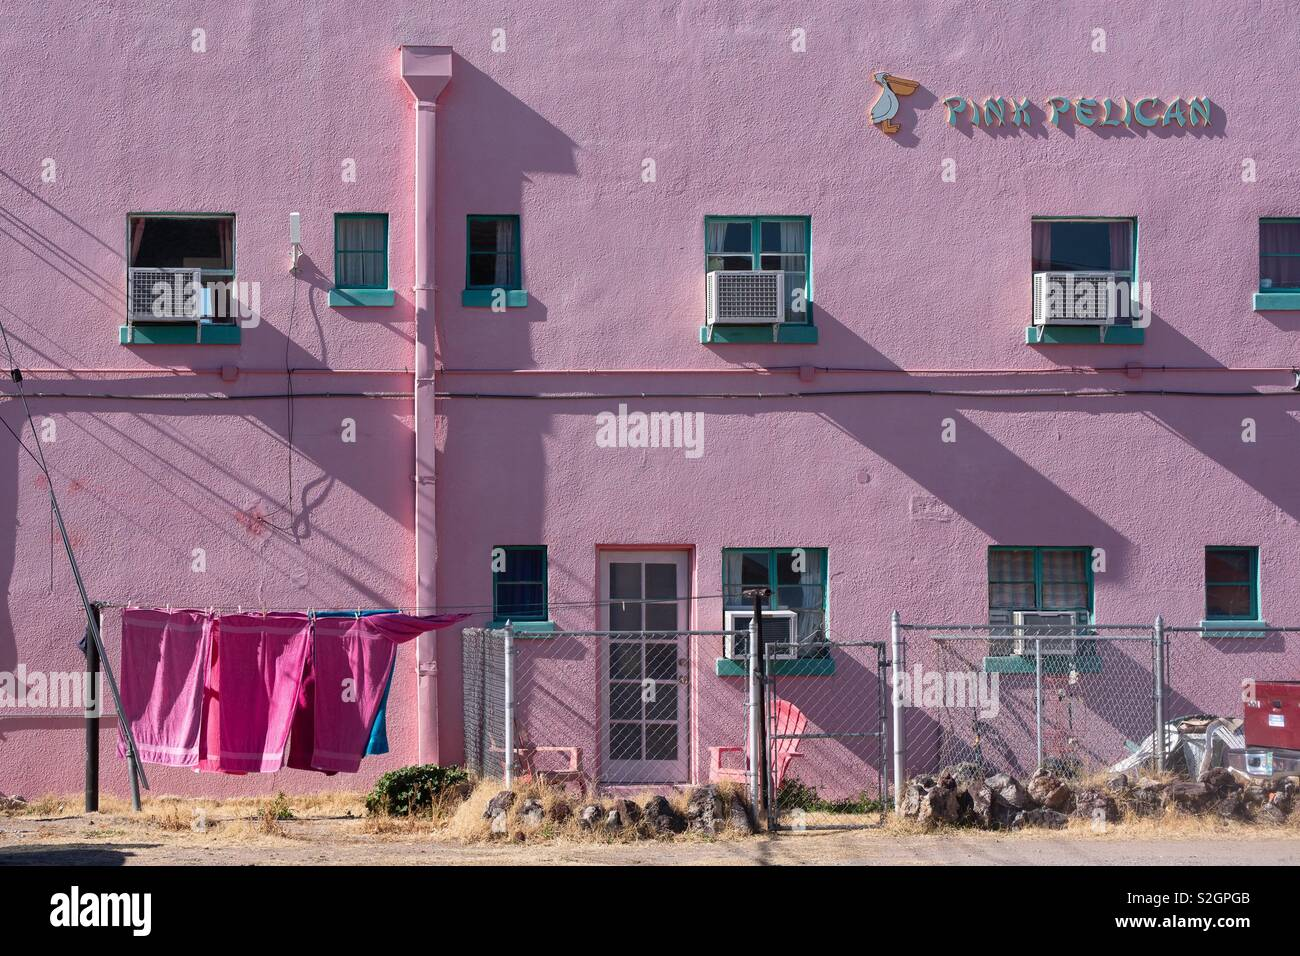 Il Pellicano Rosa hot springs spa Foto Stock